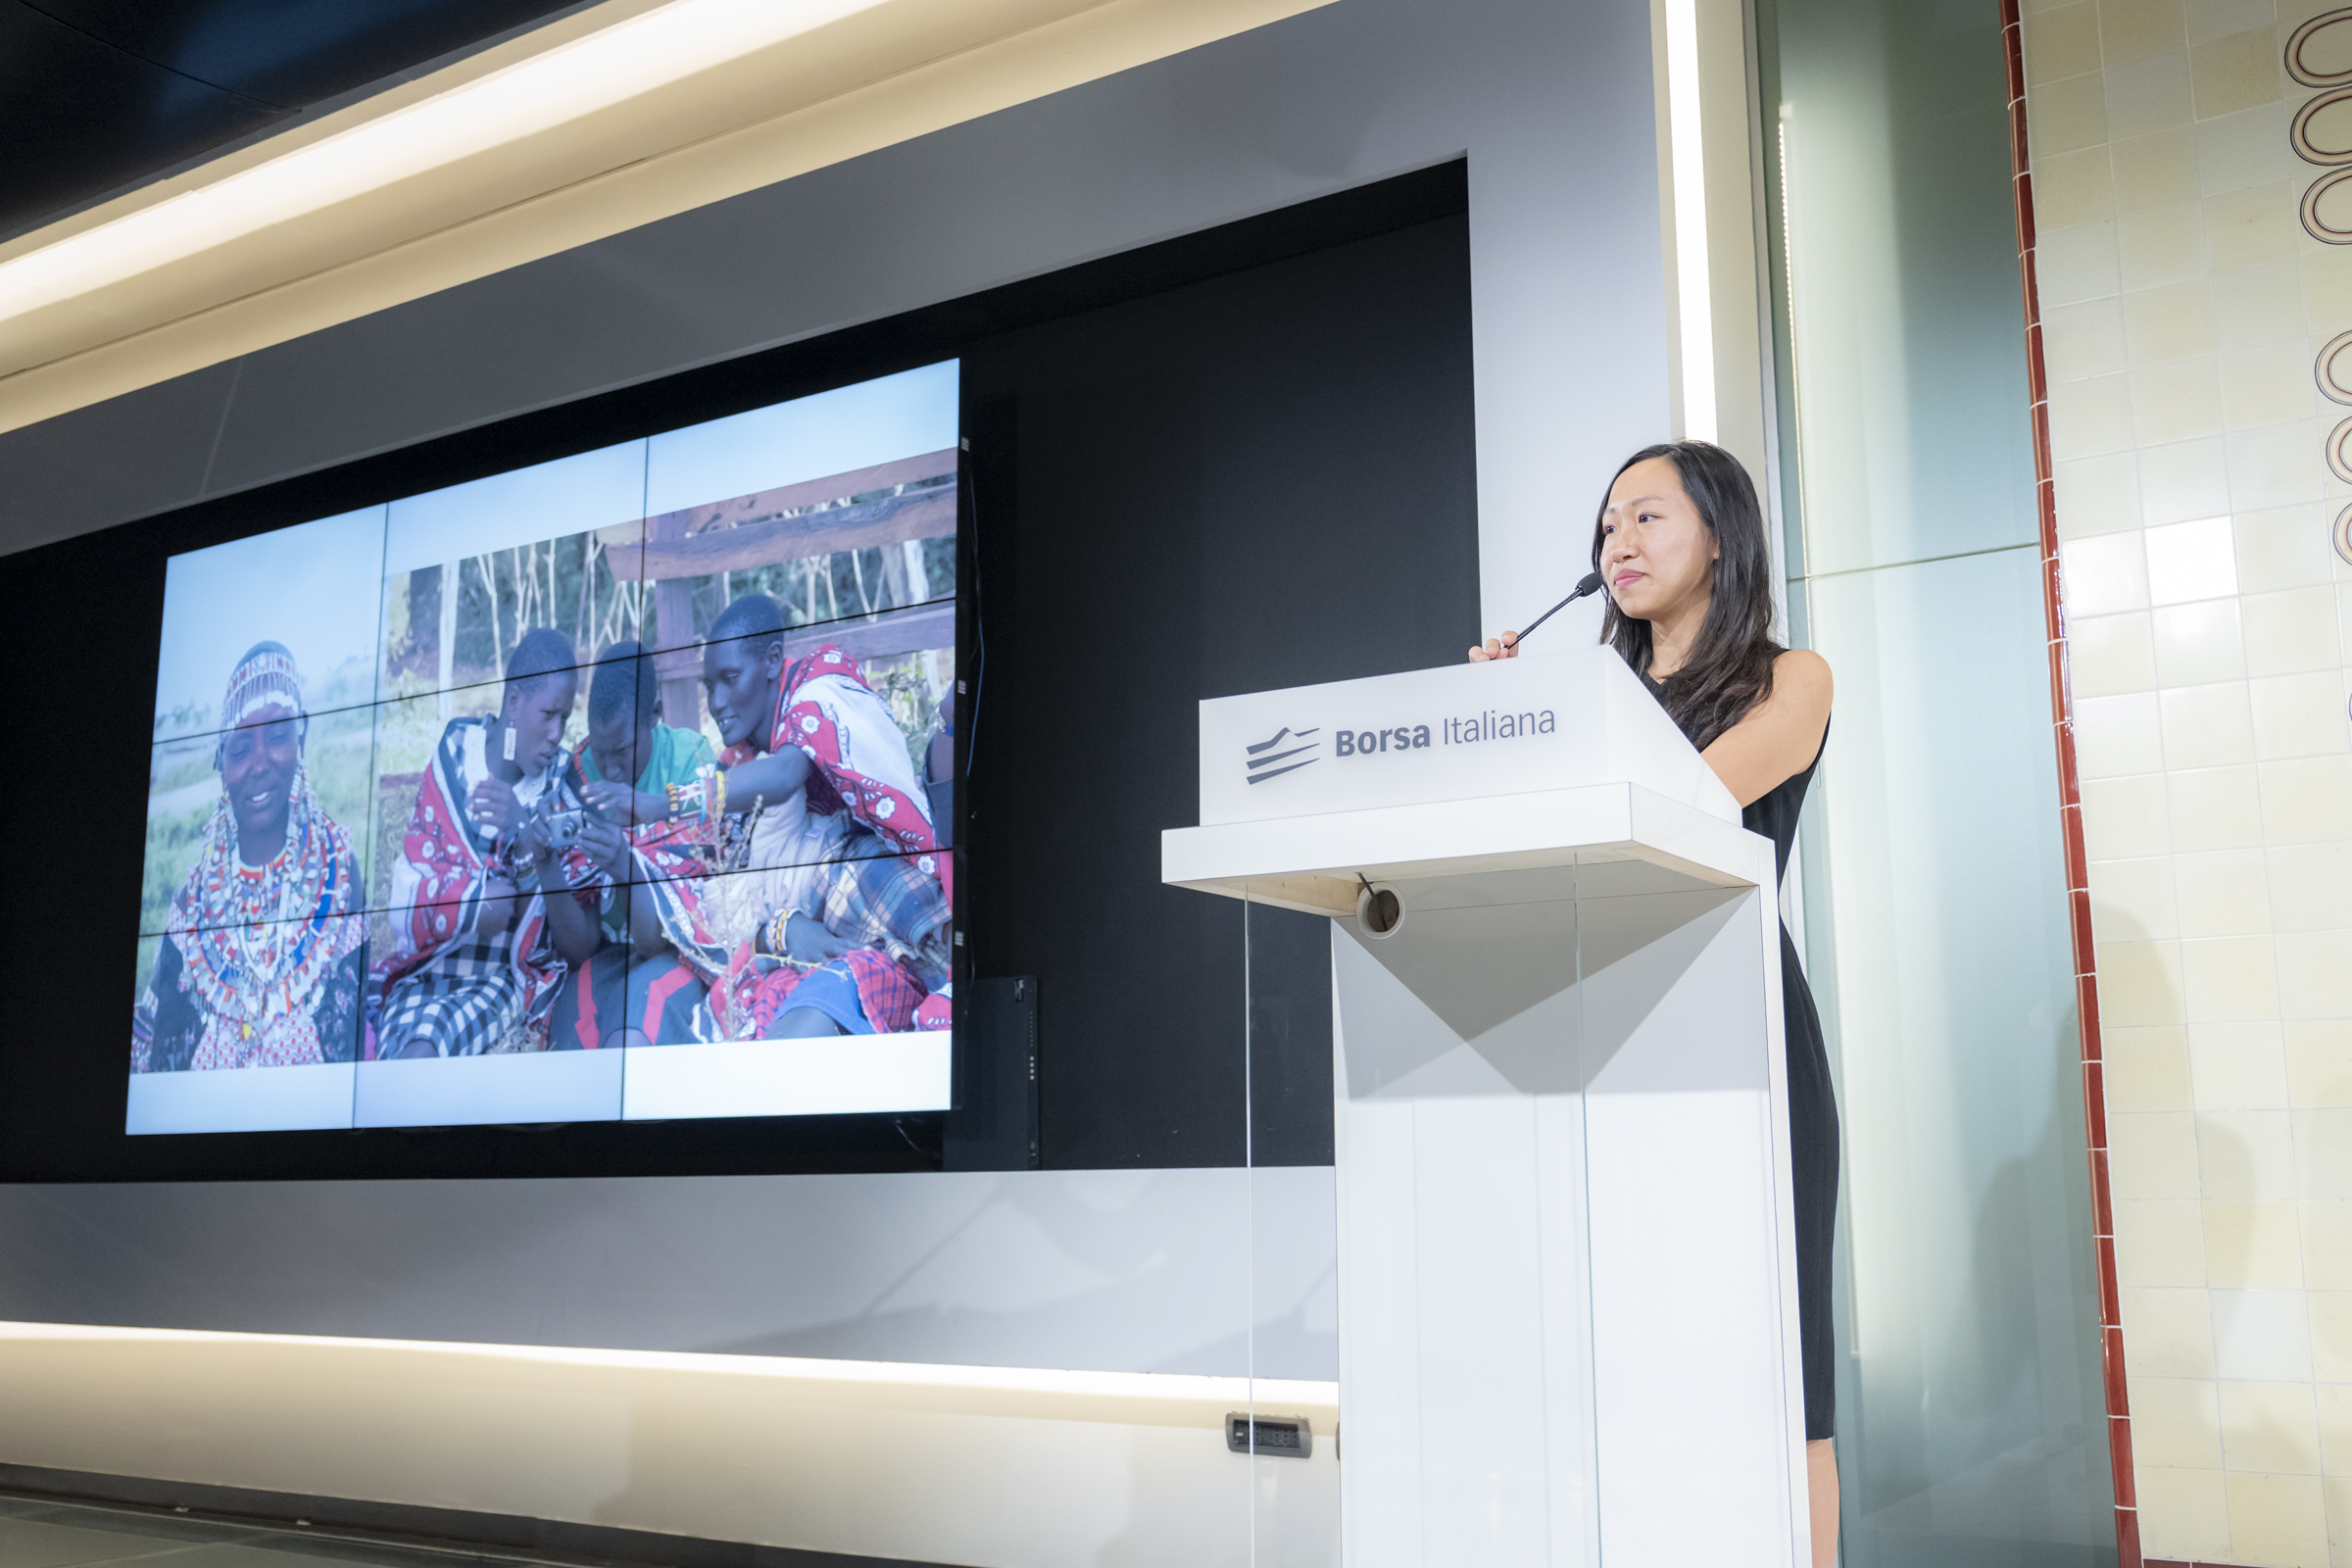 """Keynote speech at """"Ring The Bell for Gender Equality"""" event at Borsa Italiana (Italian stock exchange) on 8th March, 2019 in Milan, Italy. There were over 120 attendees."""